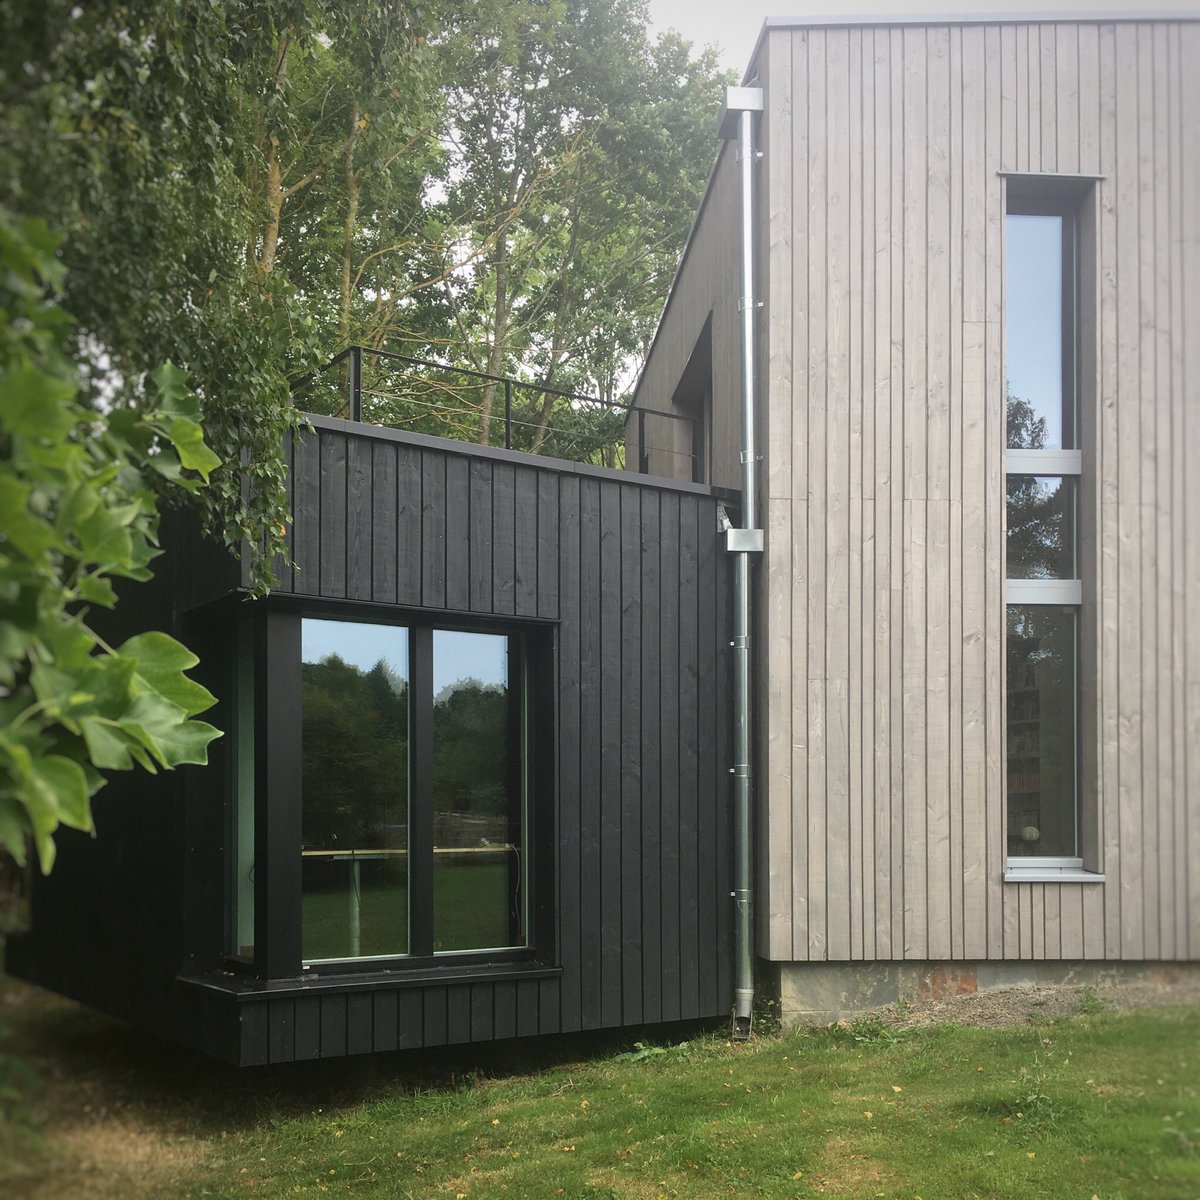 Fishleys Passivhaus from back garden